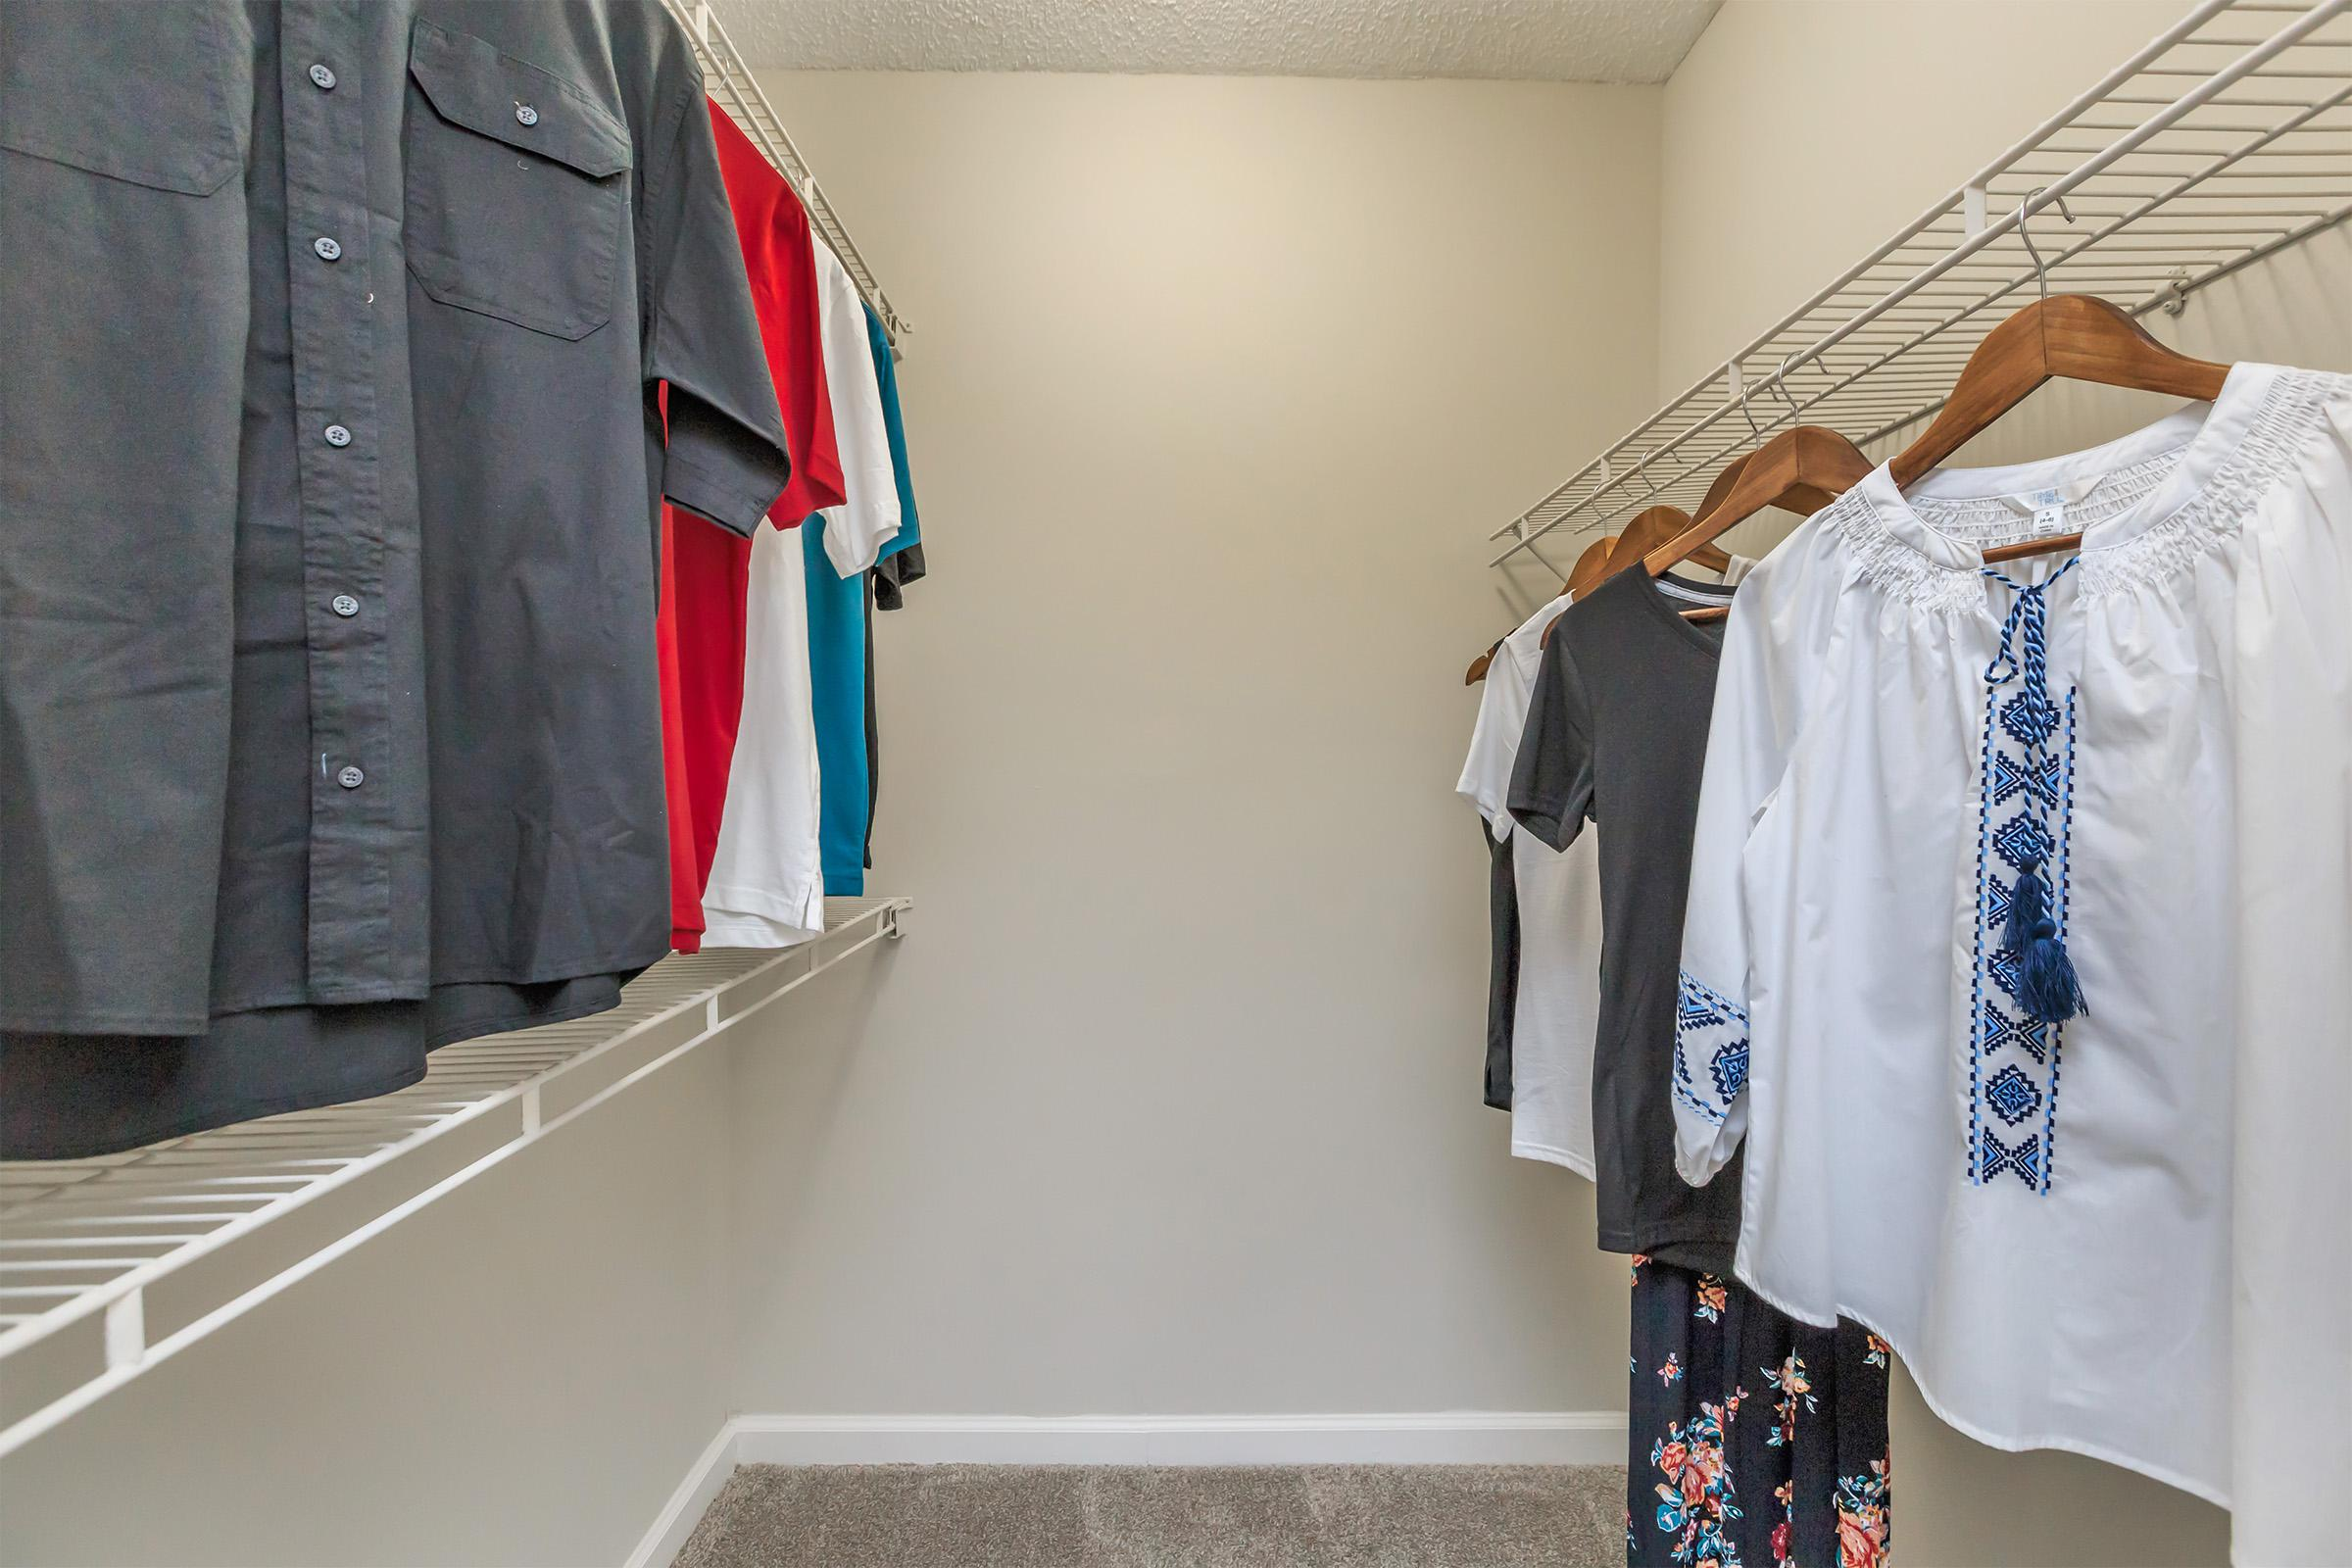 clothes hanging on a wall